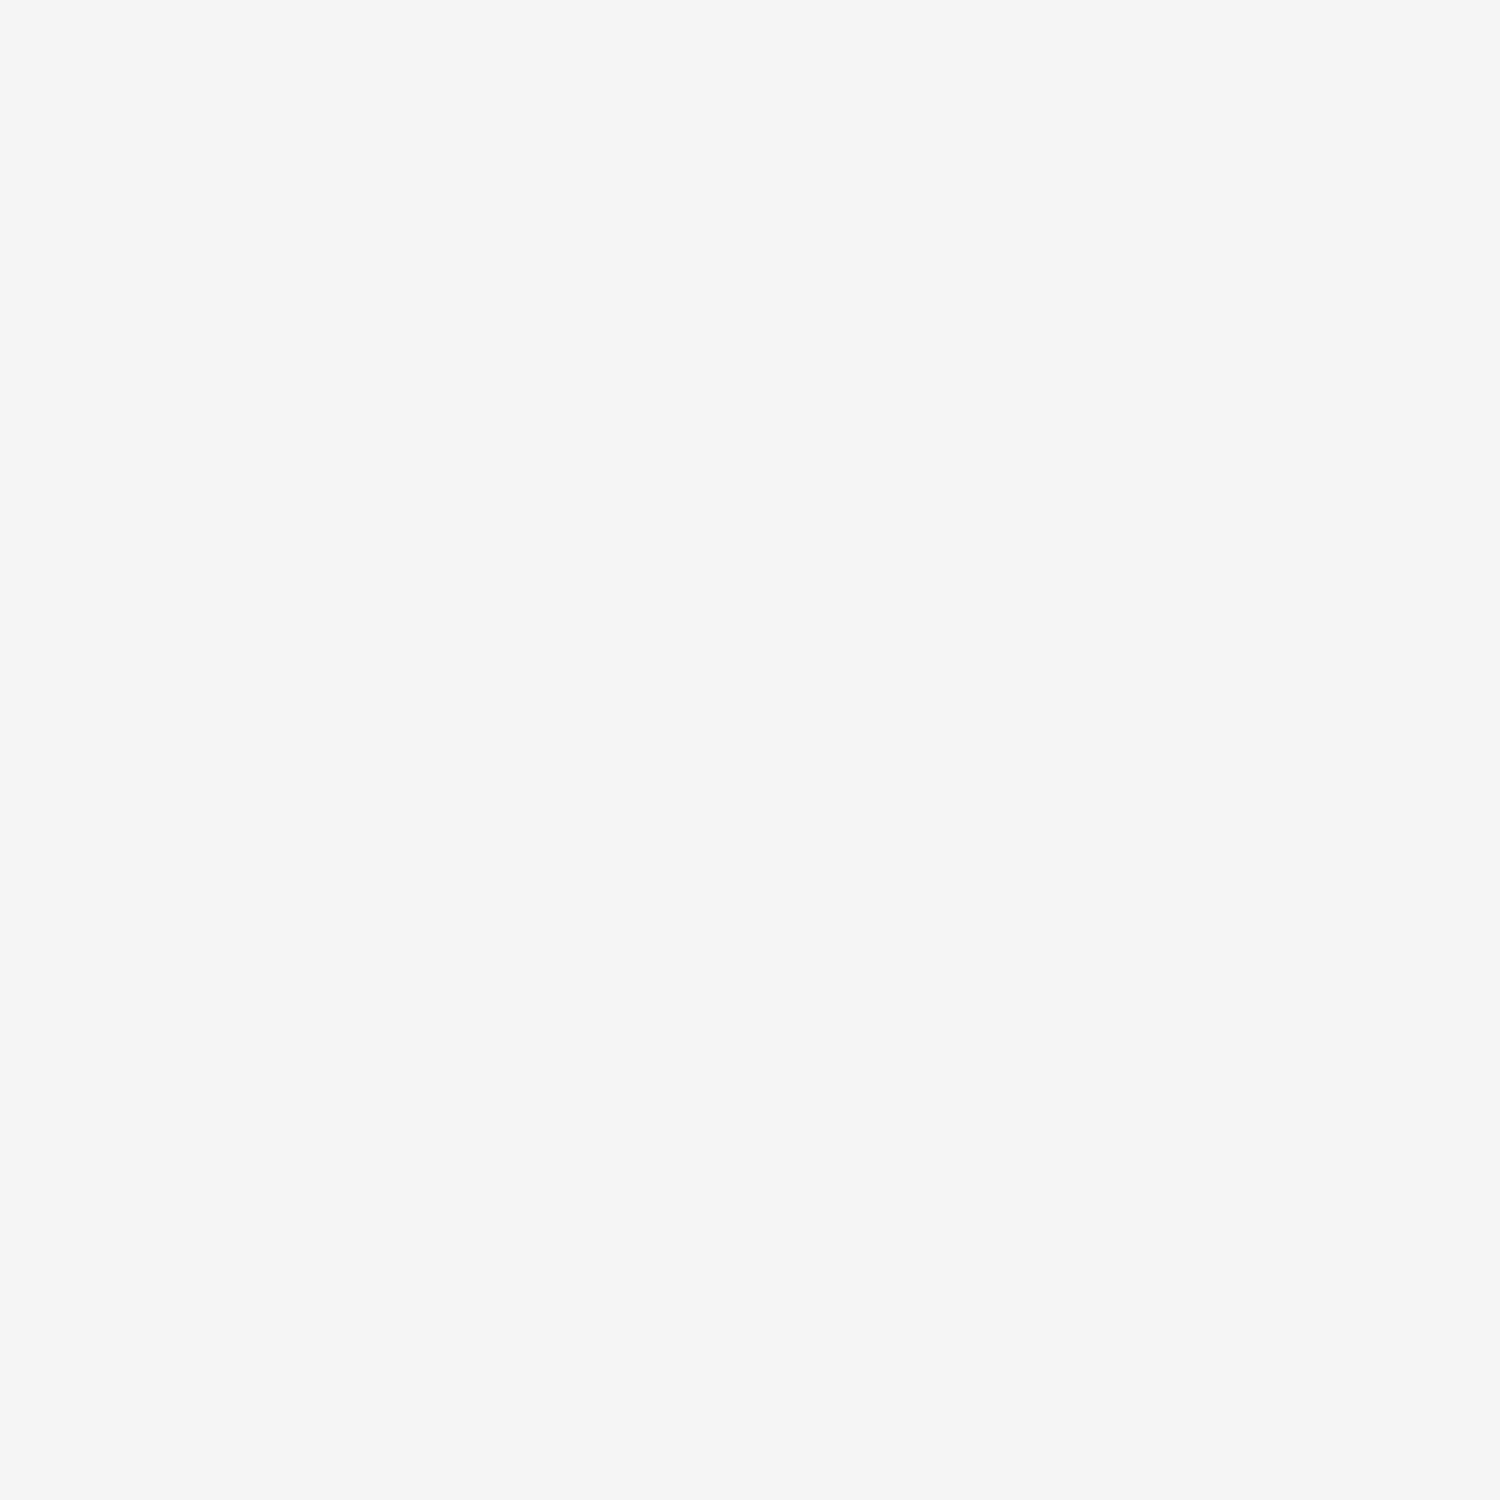 safety-helmet-casco-champ-3 1500x1500 81827.jpg a13854e72e